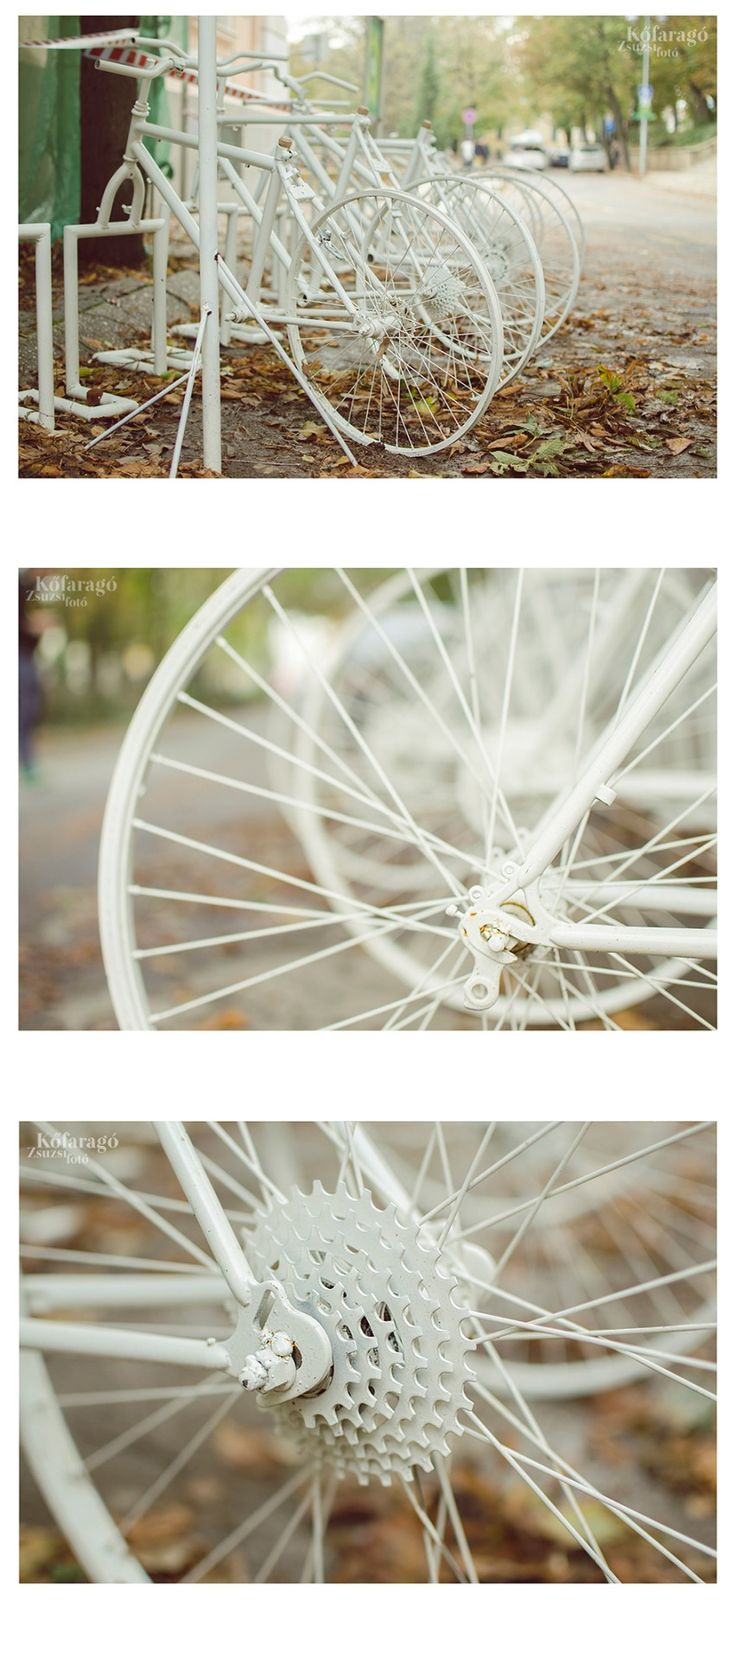 white bicycle by kofaragozsuzsiphotos  www.facebook.com/kofaragozsuzsiphotos